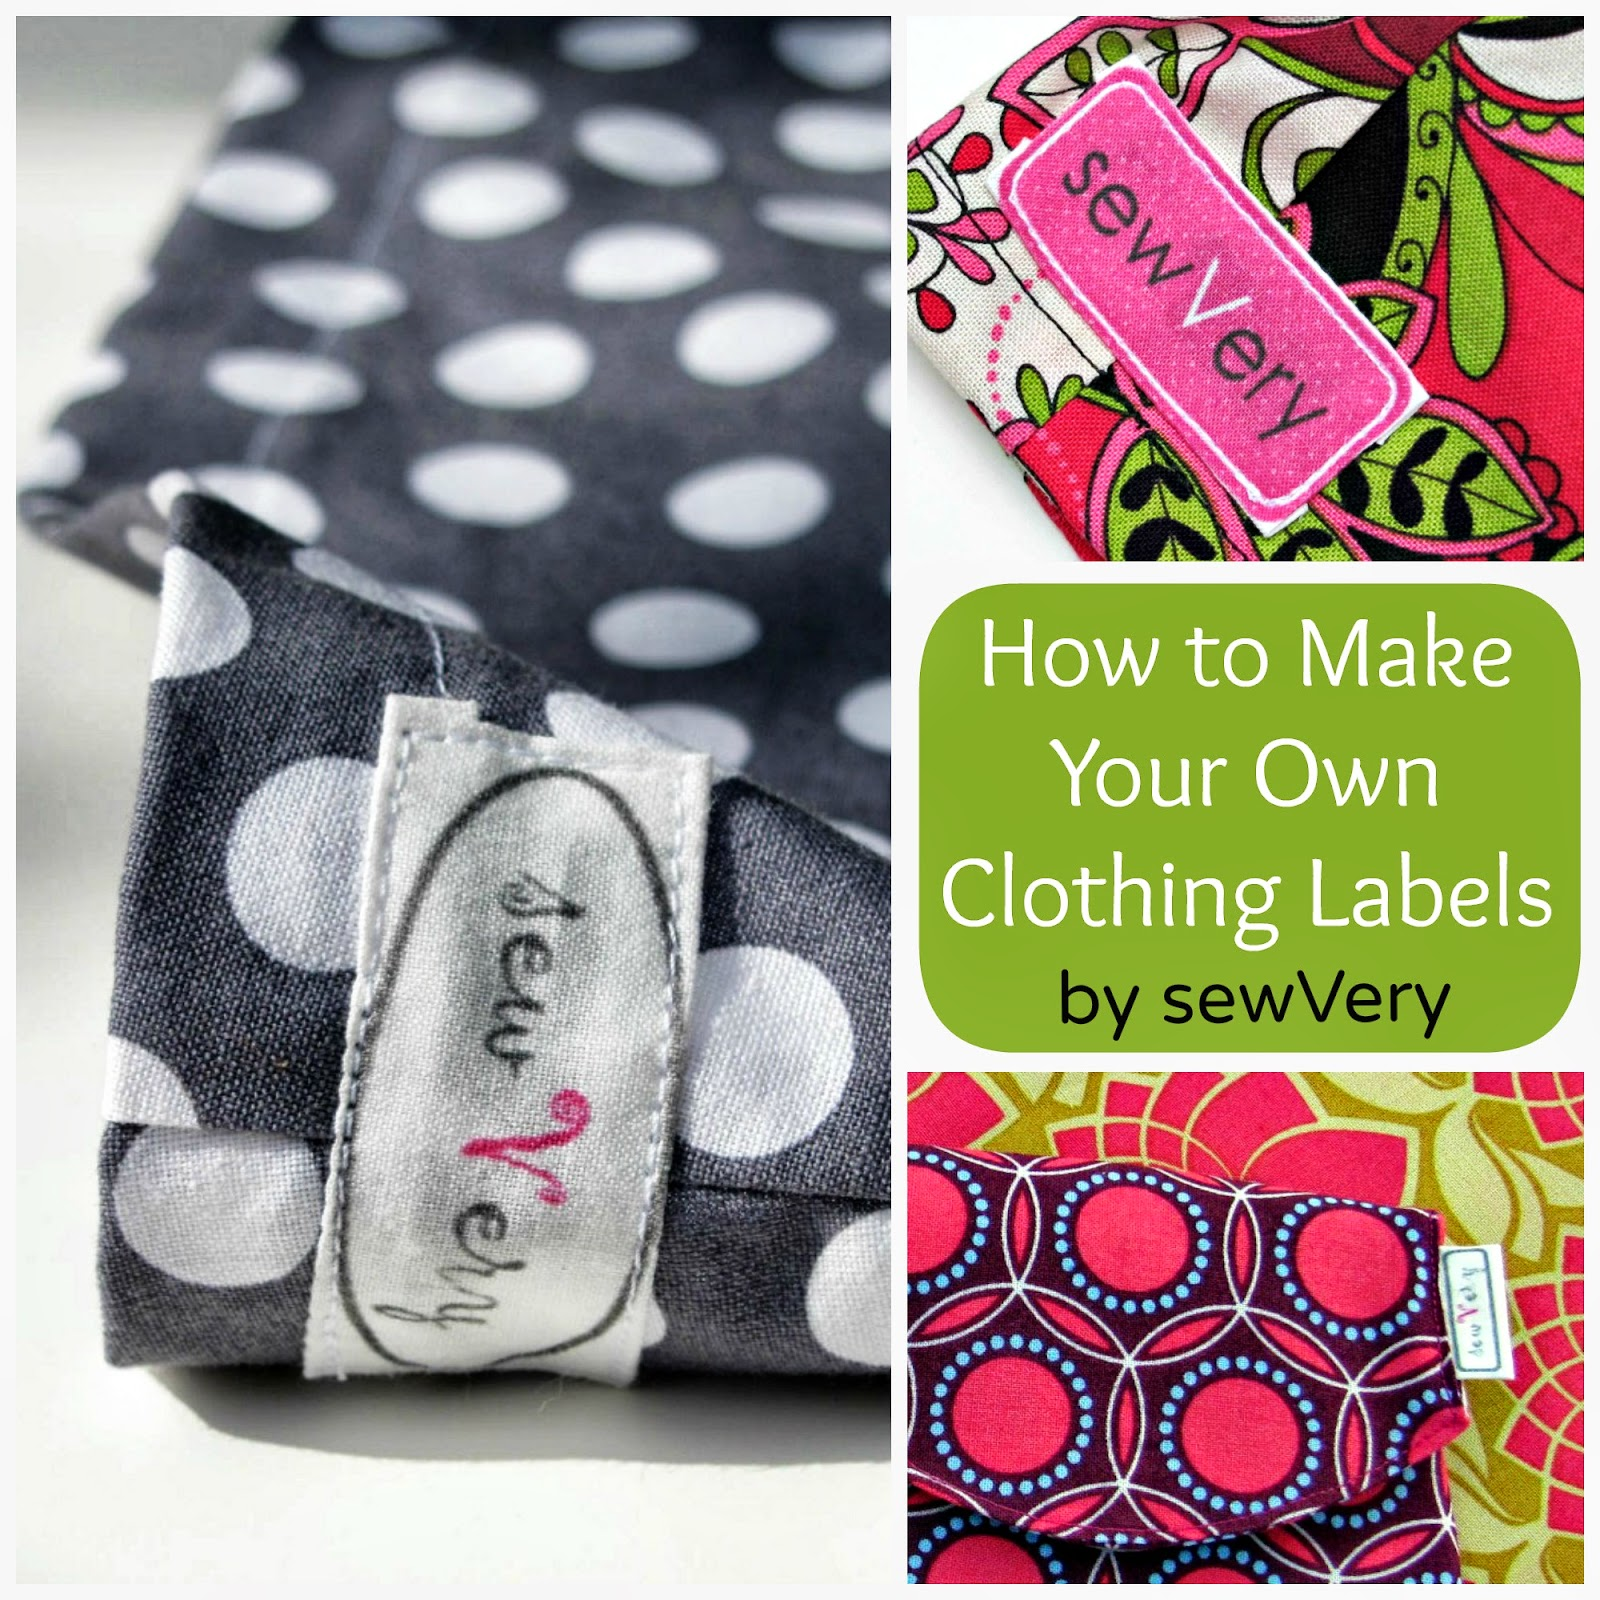 Sewvery how to make your own clothing labels for Create fabric labels